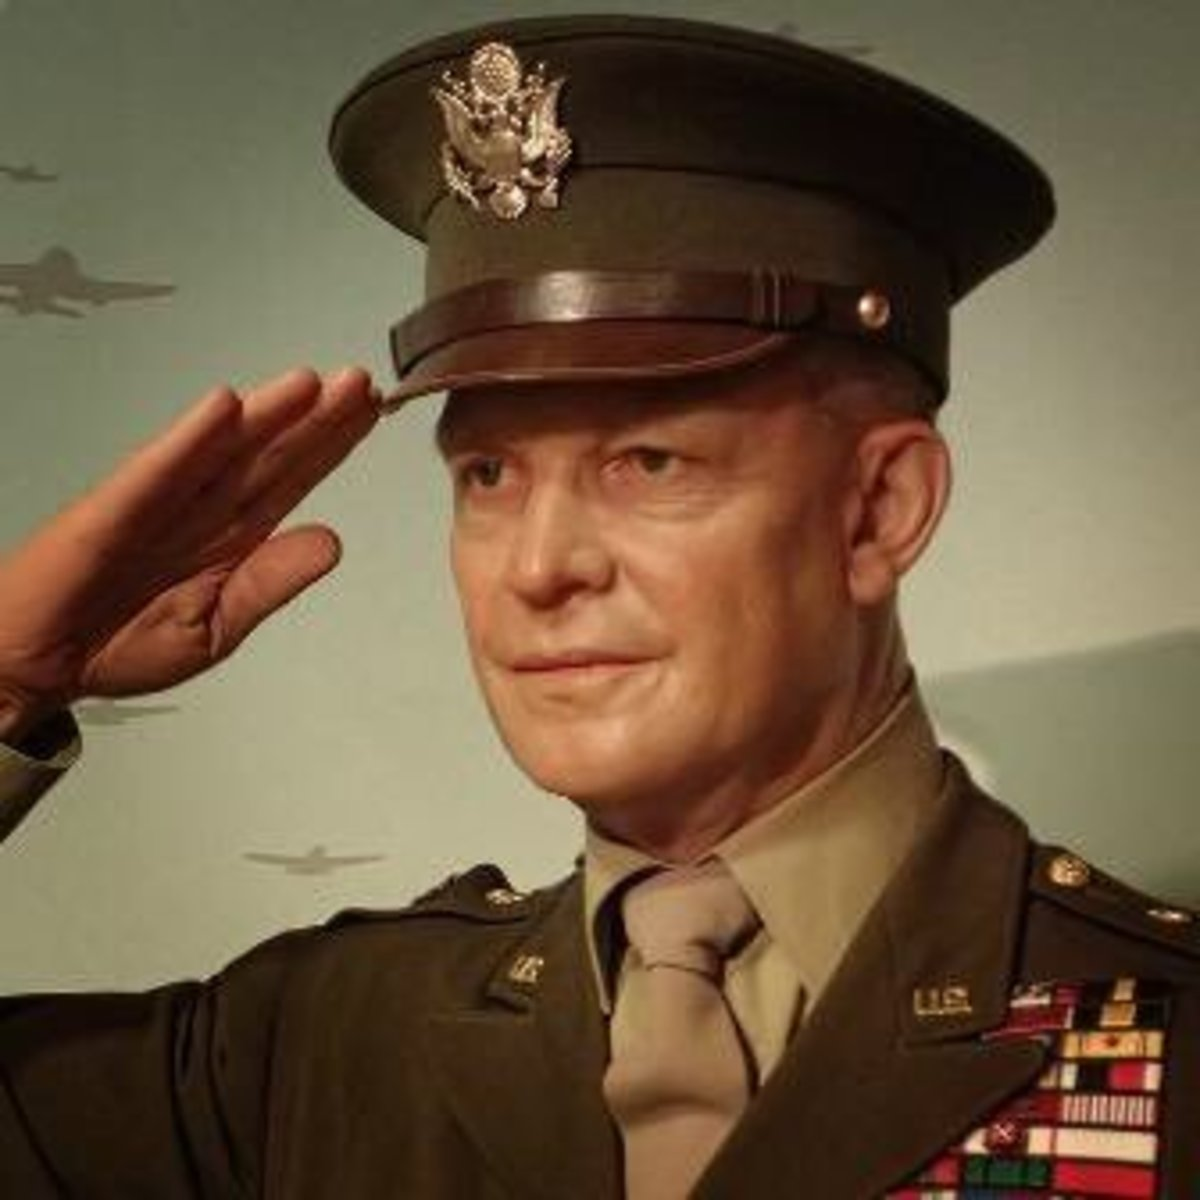 Army General Dwight D. Eisenhower, 34th President of United States